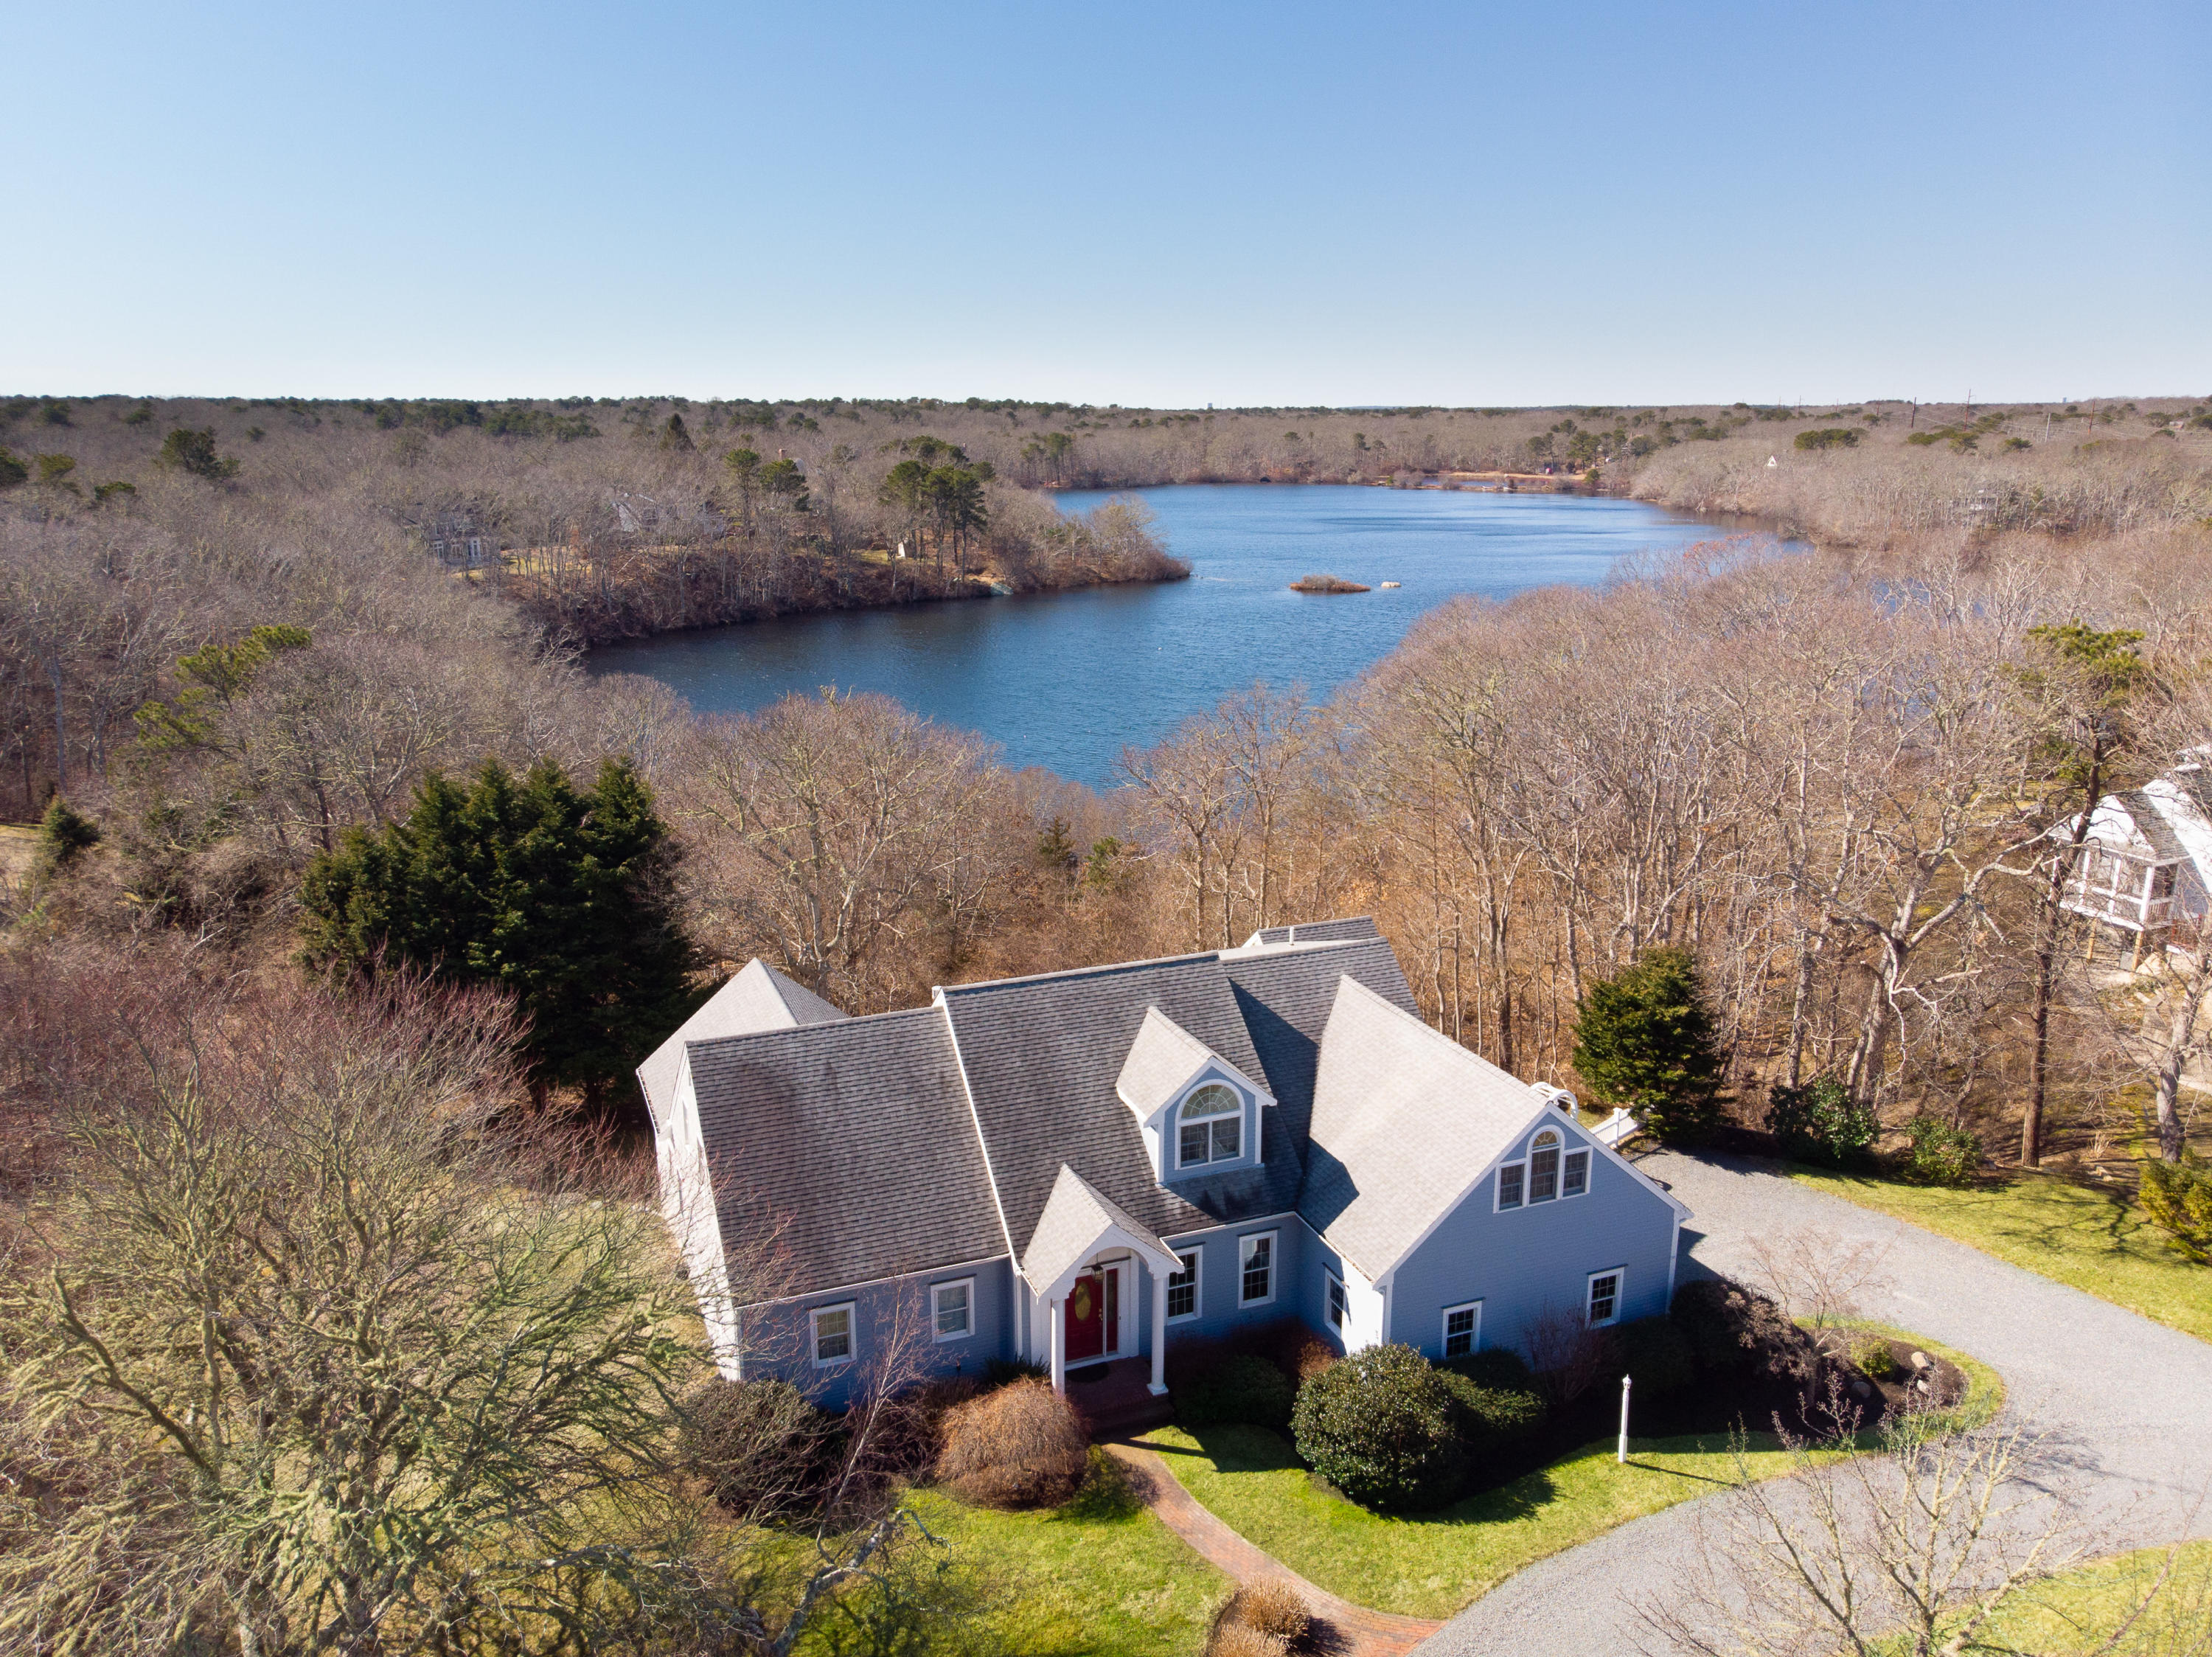 148-griffiths-pond-road-brewster-ma-02631